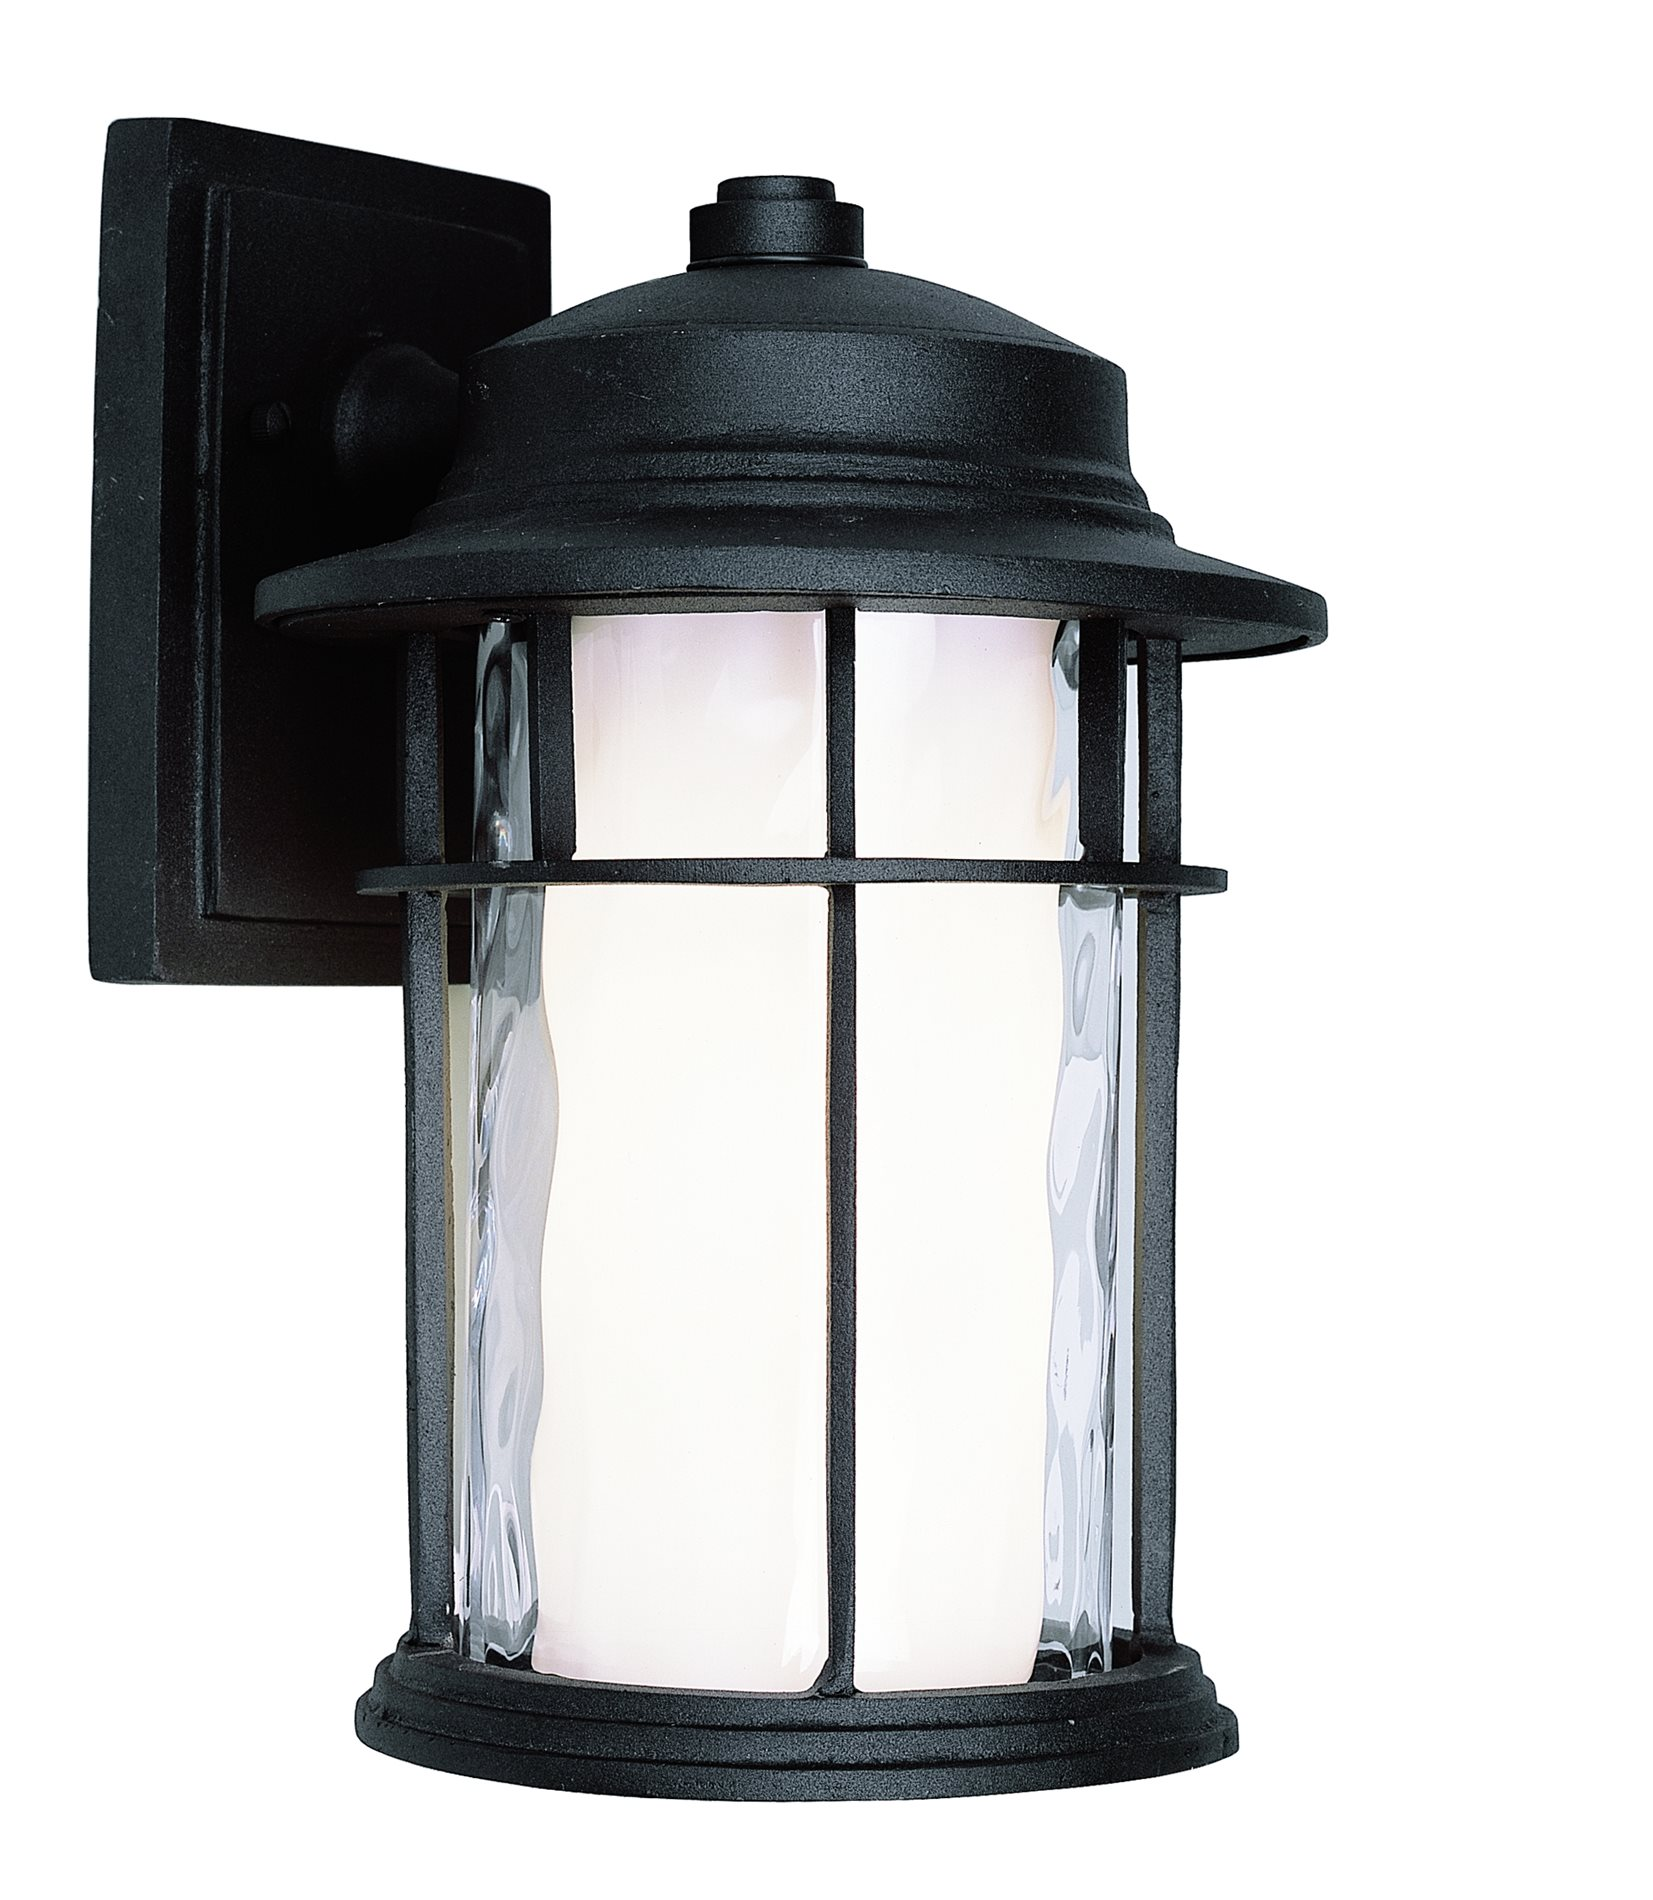 Trans Globe Lighting Led 5290 Bk Chimney Transitional Energy Efficient Led Outdoor Wall Sconce